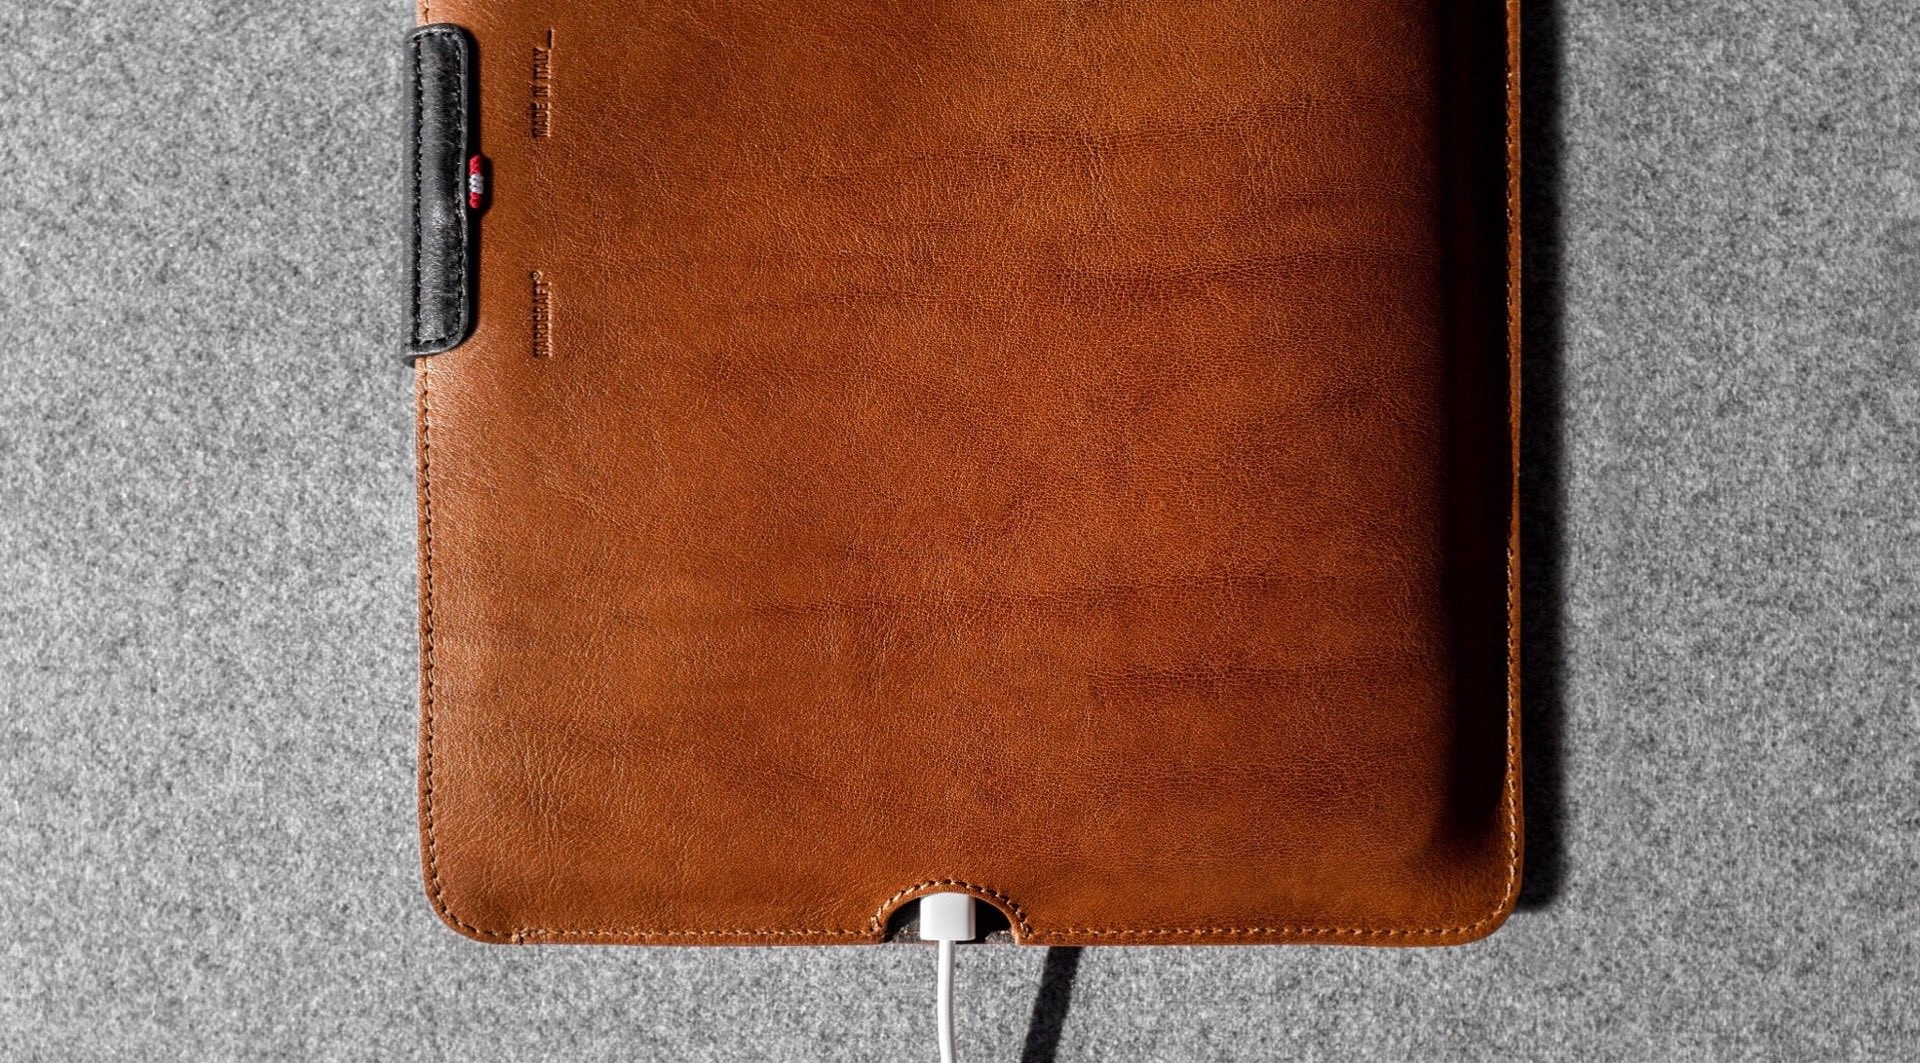 hard-graft-together-leather-ipad-pro-case-charging